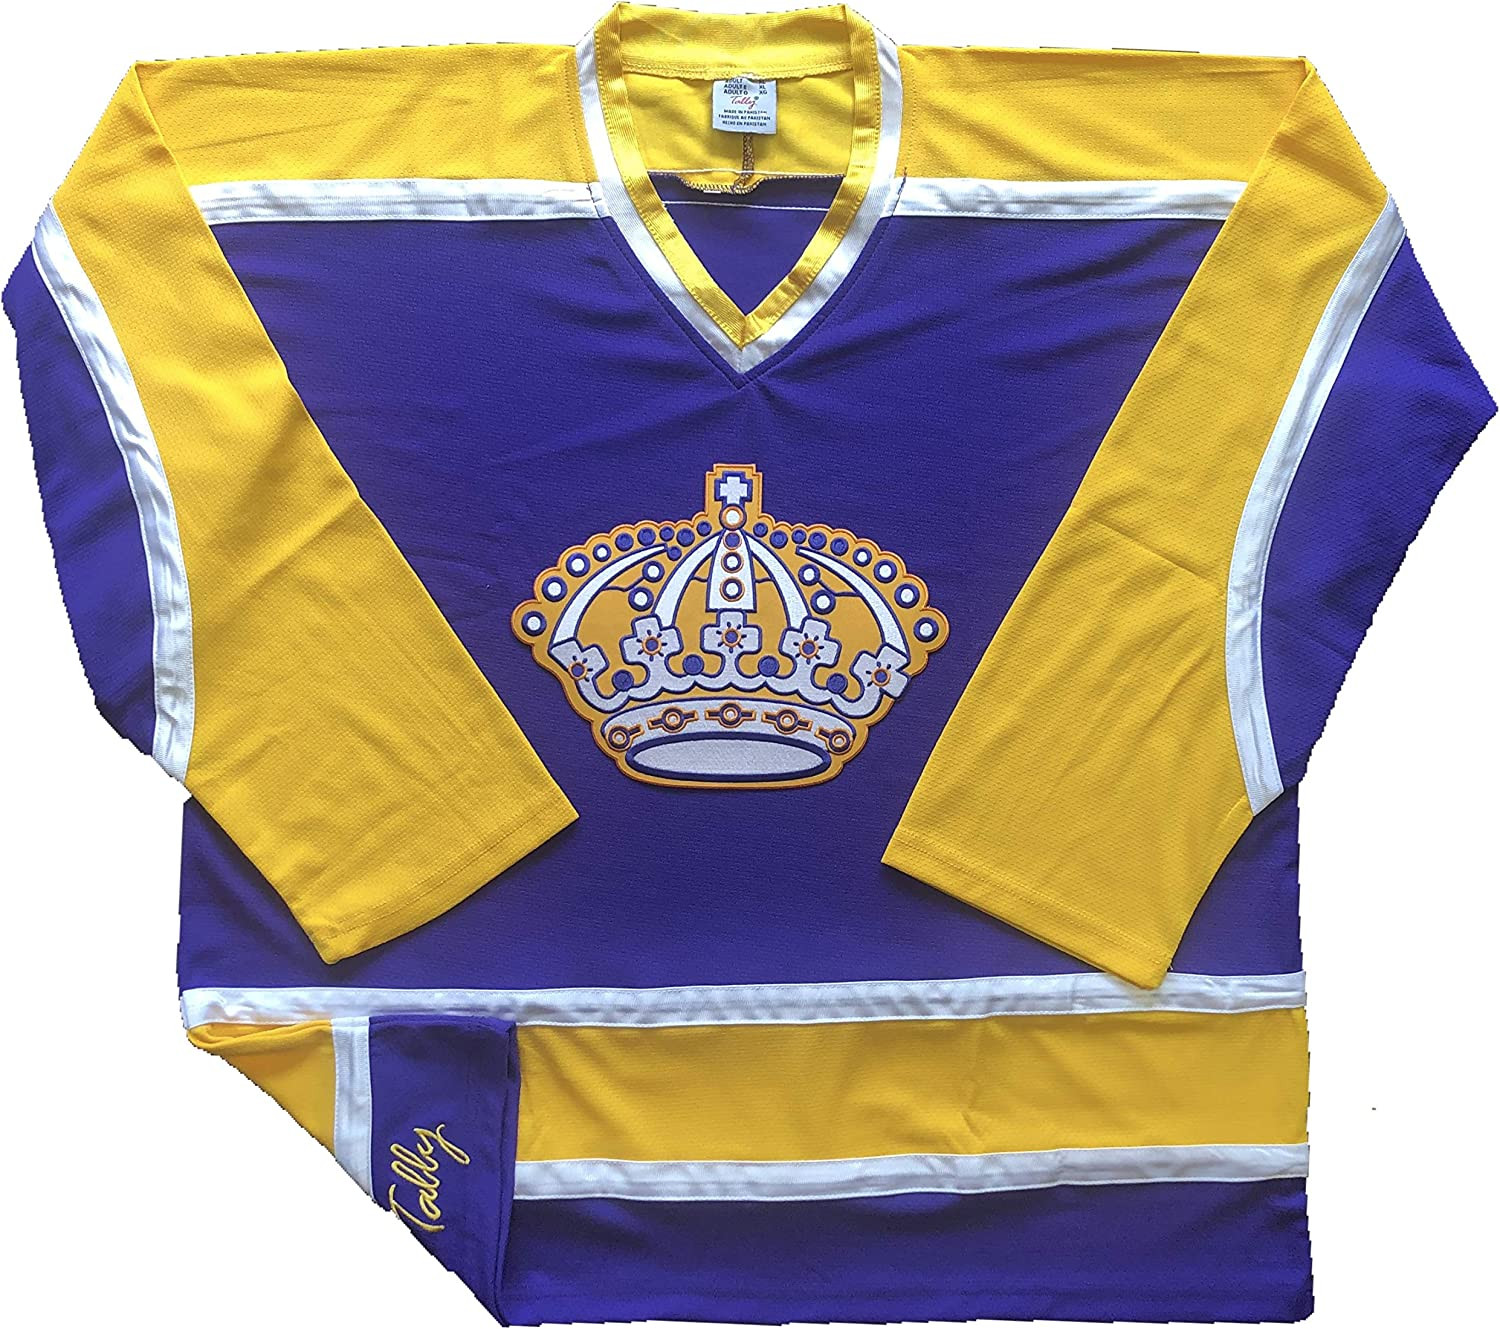 Kings Hockey Jerseys We are Ready to Customize with Your Name and Number